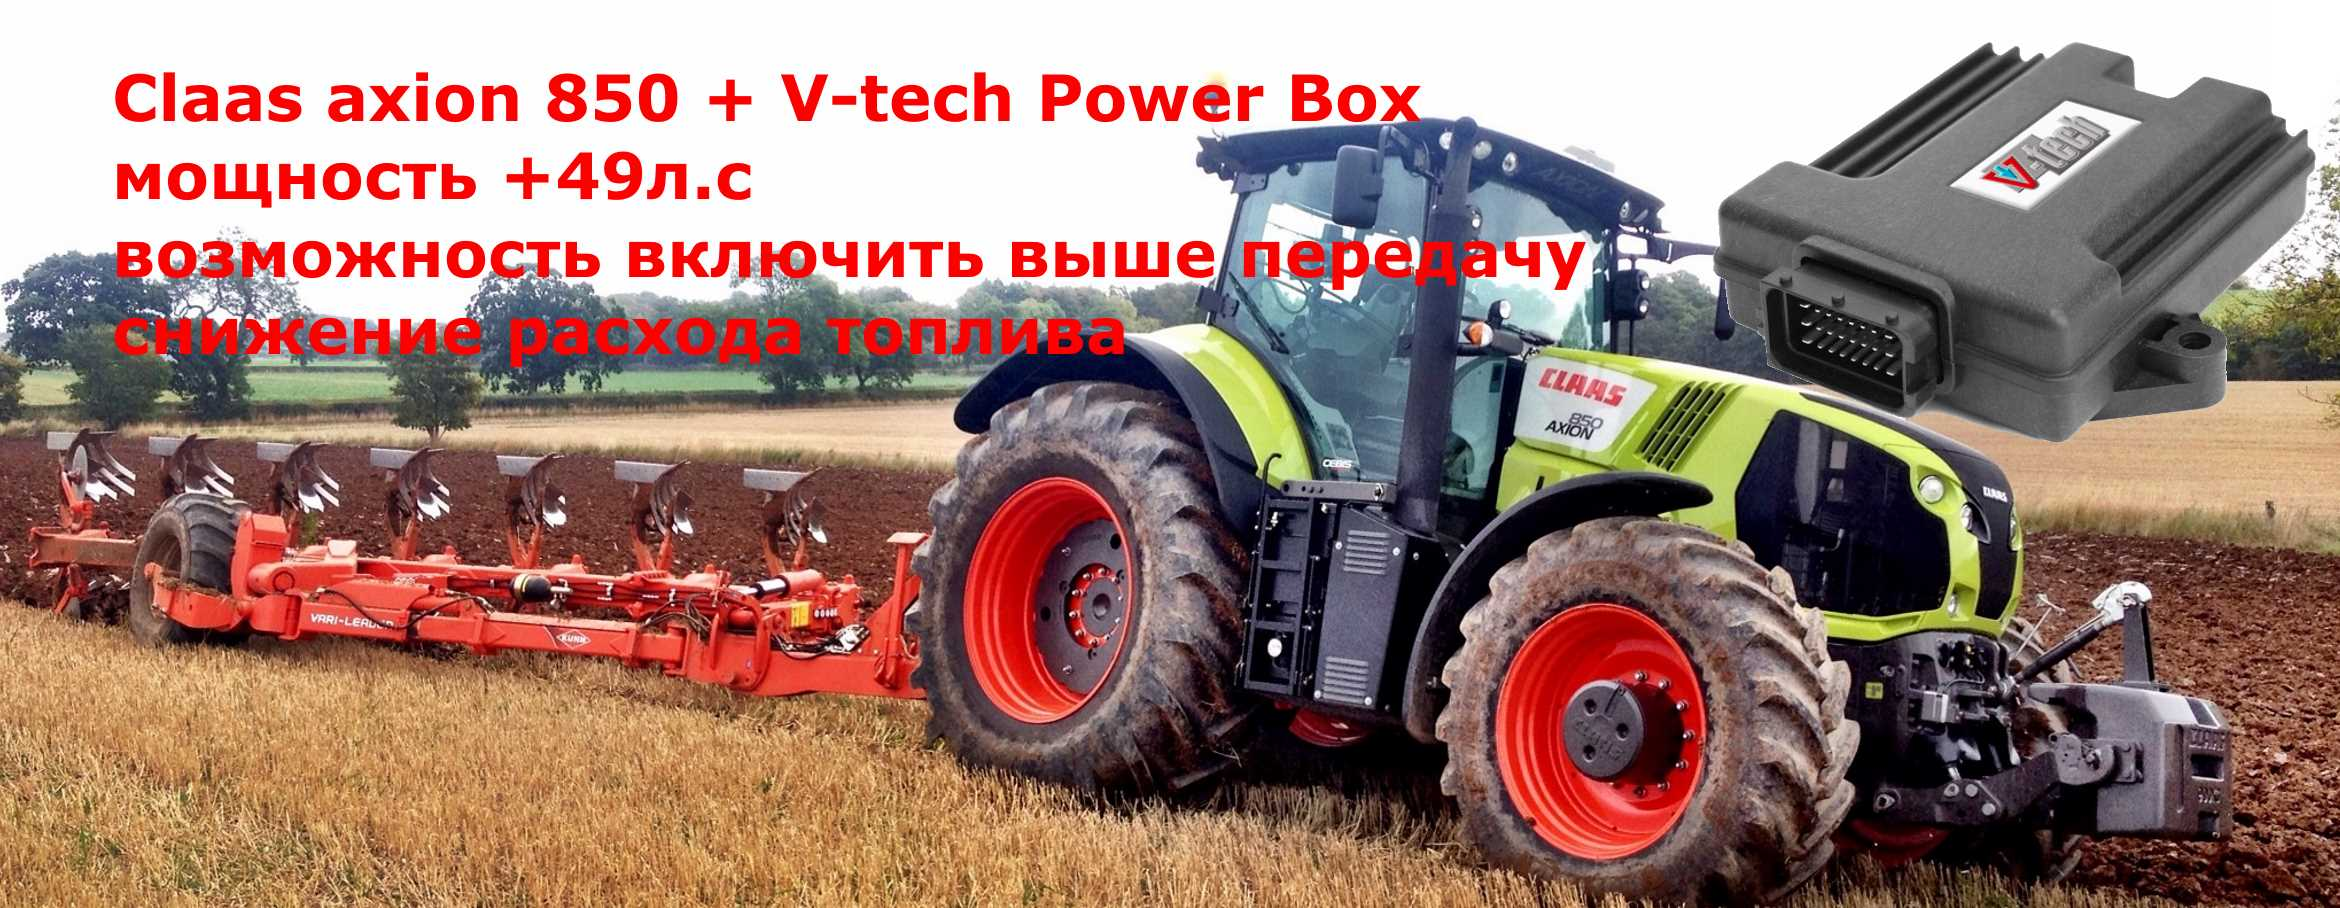 чип тюнинг claas axion 850